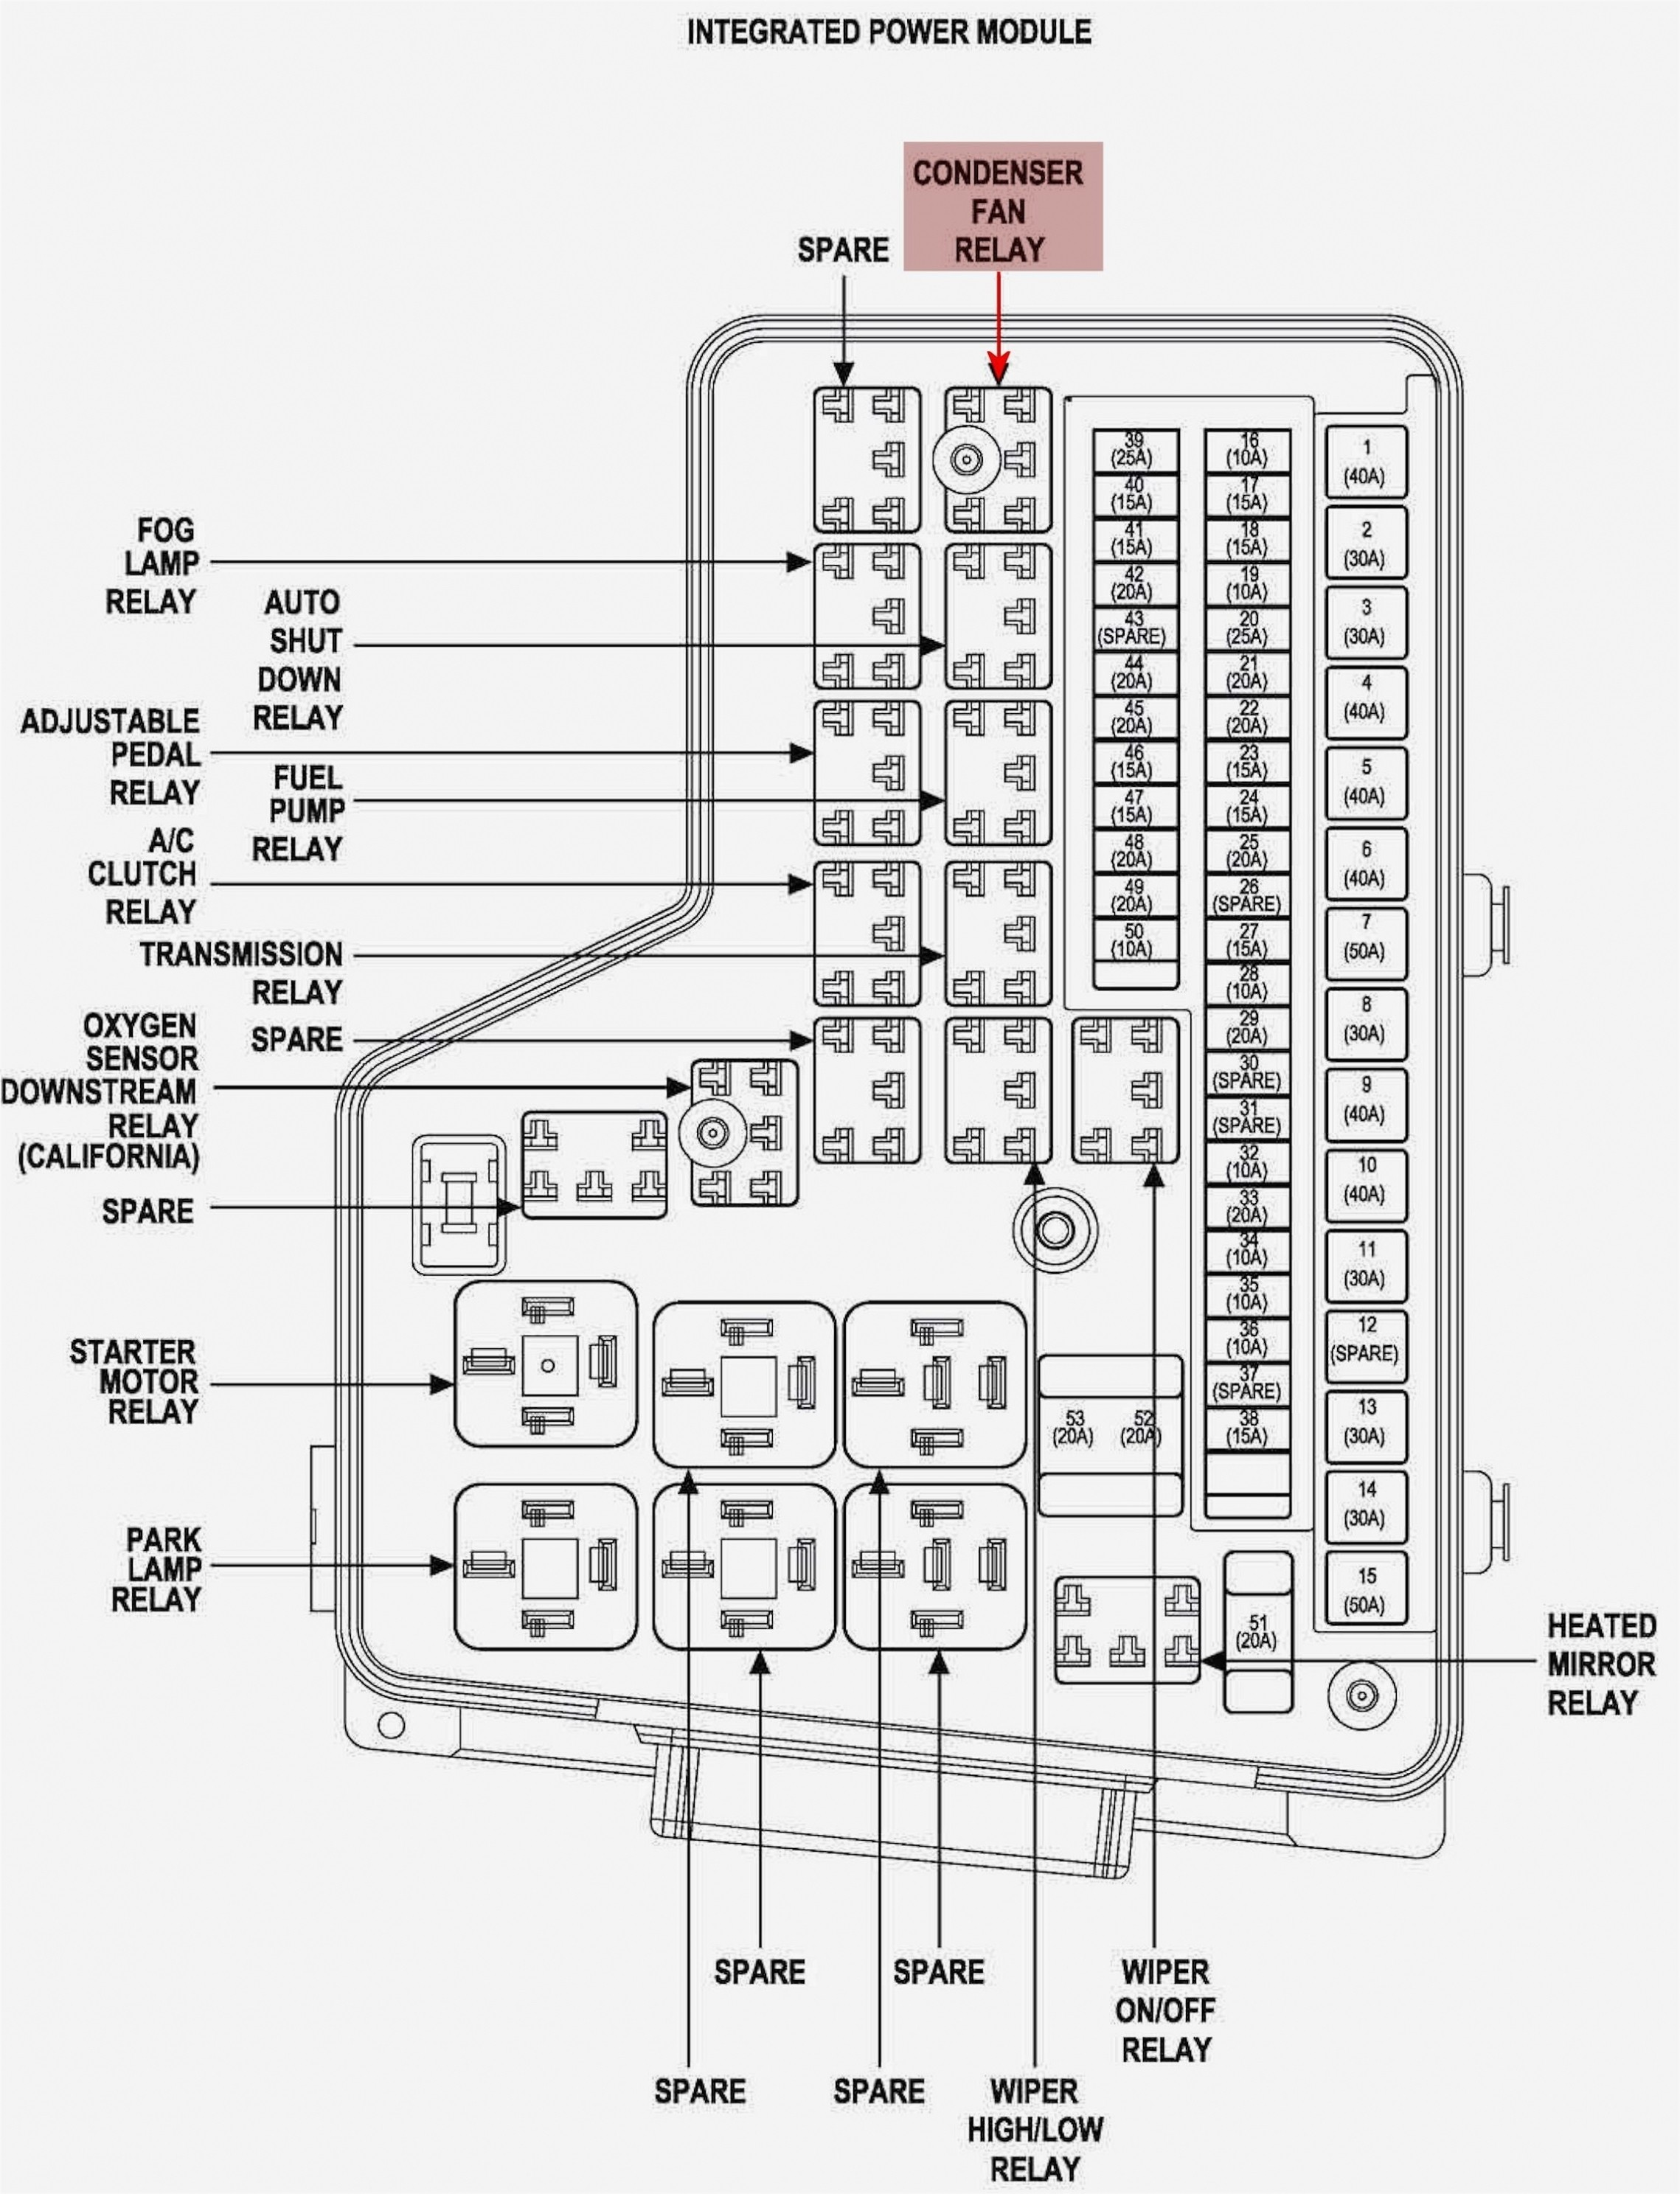 2014 ram 5500 fuse diagram - fusebox and wiring diagram device-bend -  device-bend.coroangelo.it  coroangelo.it